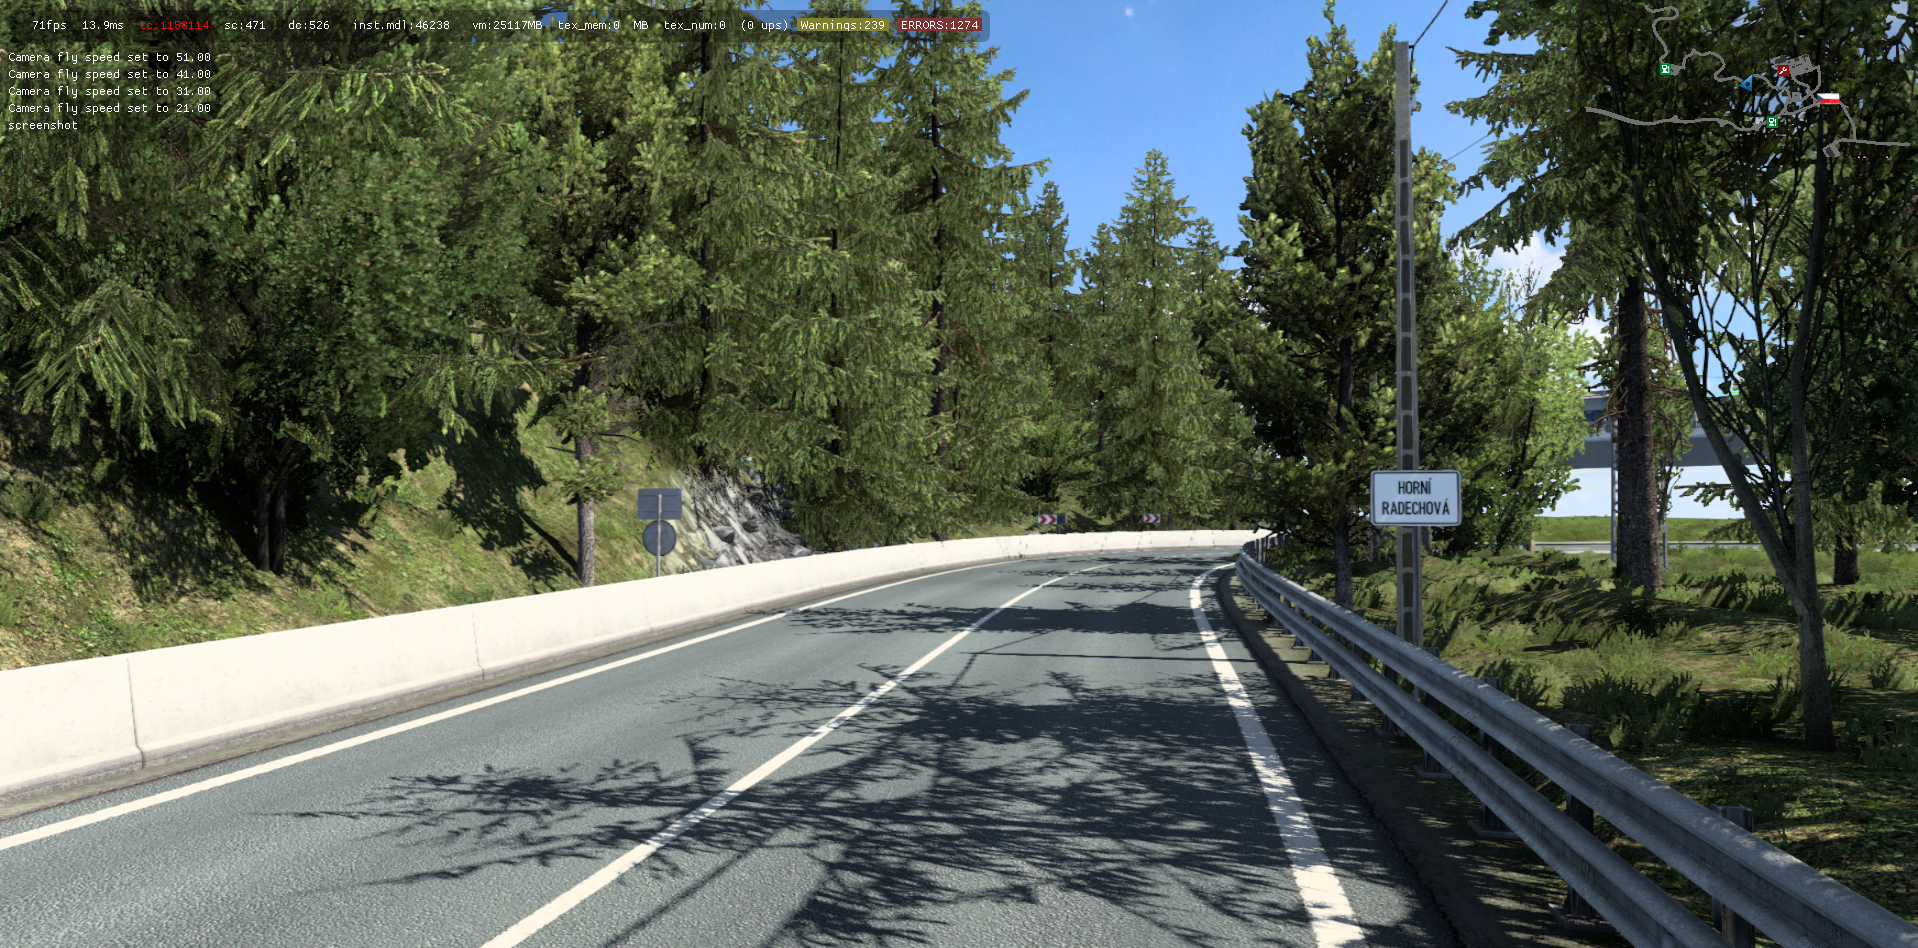 ets2_20210921_212337_00.png